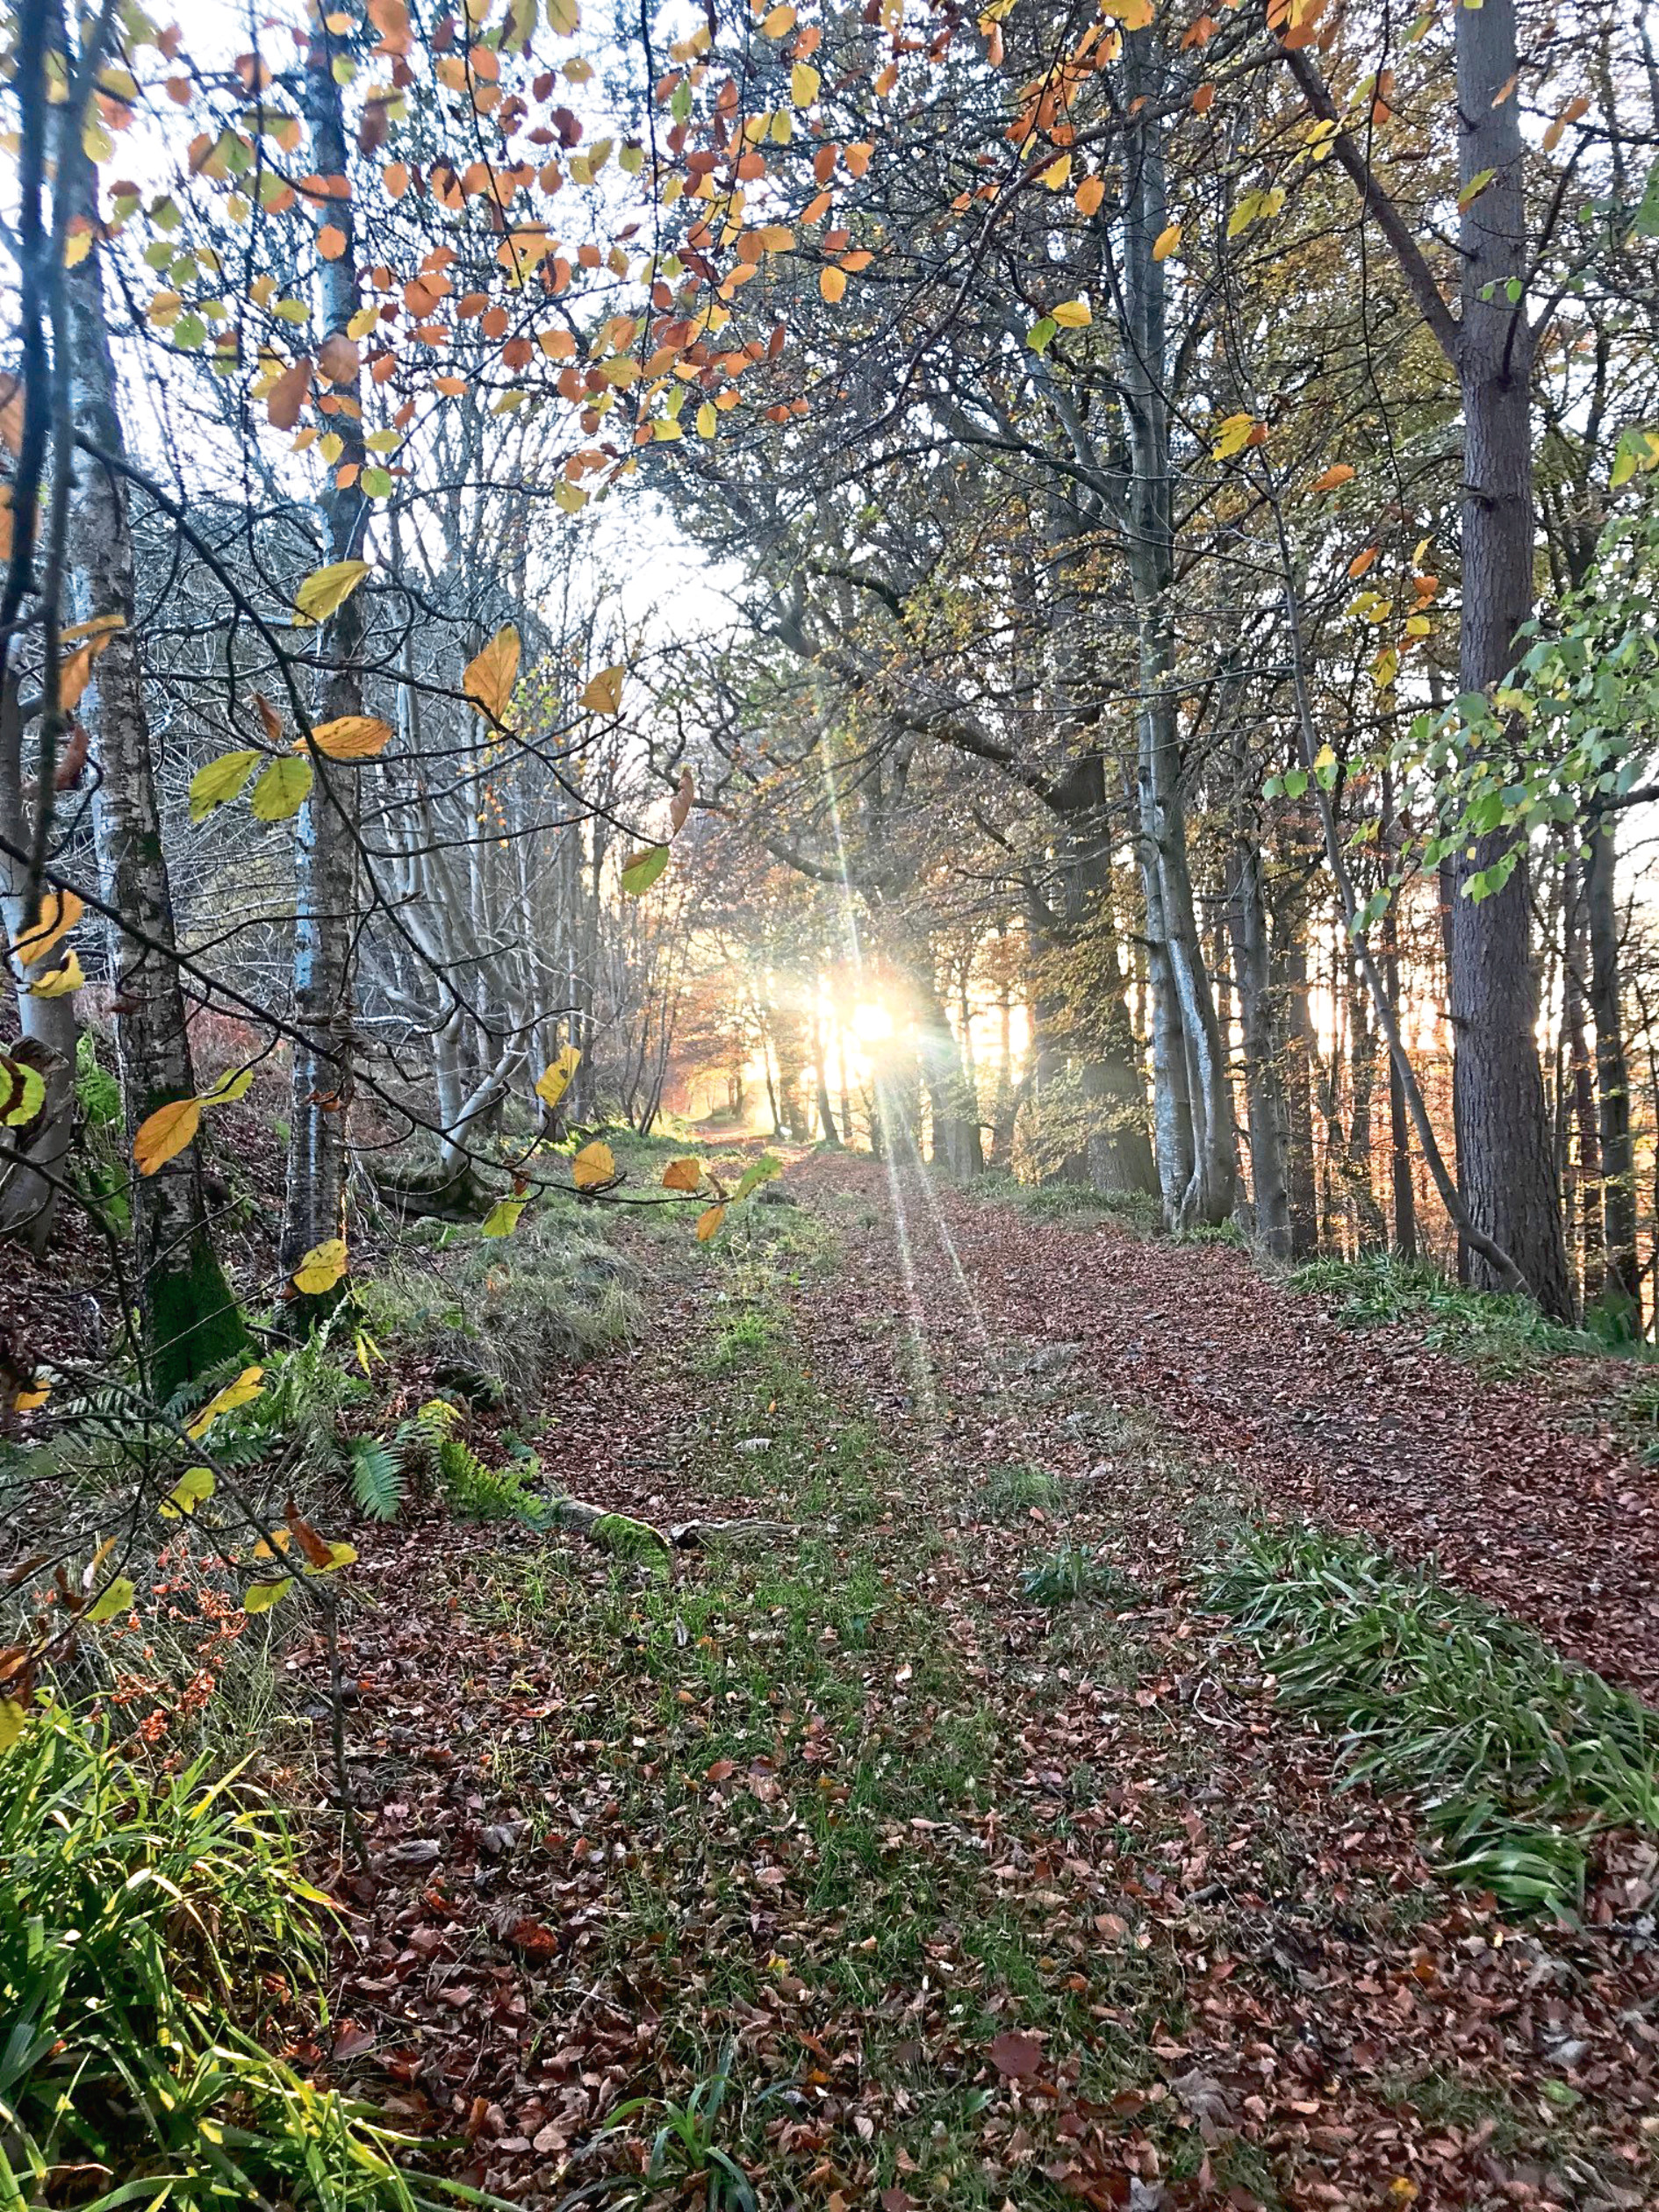 Old Kemnay road woodland near Inverurie, would be affected.